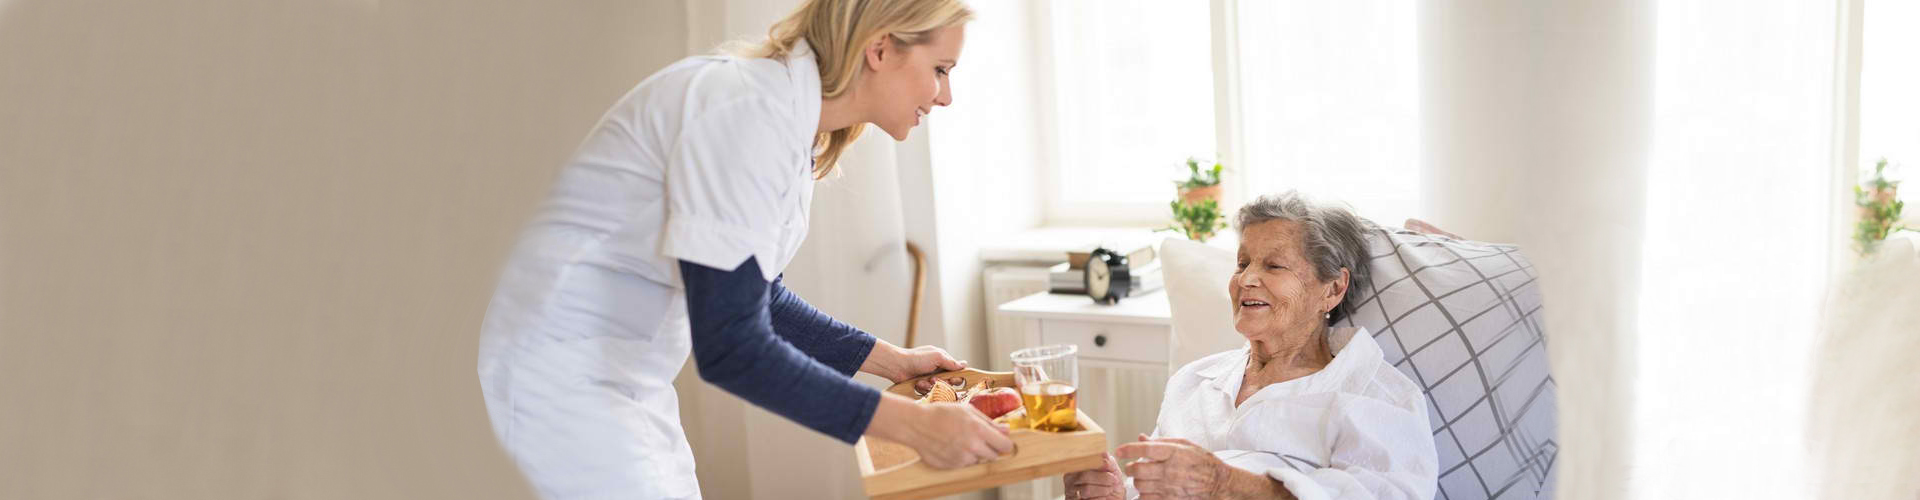 a caregiver serving meal to the senior woman in bed